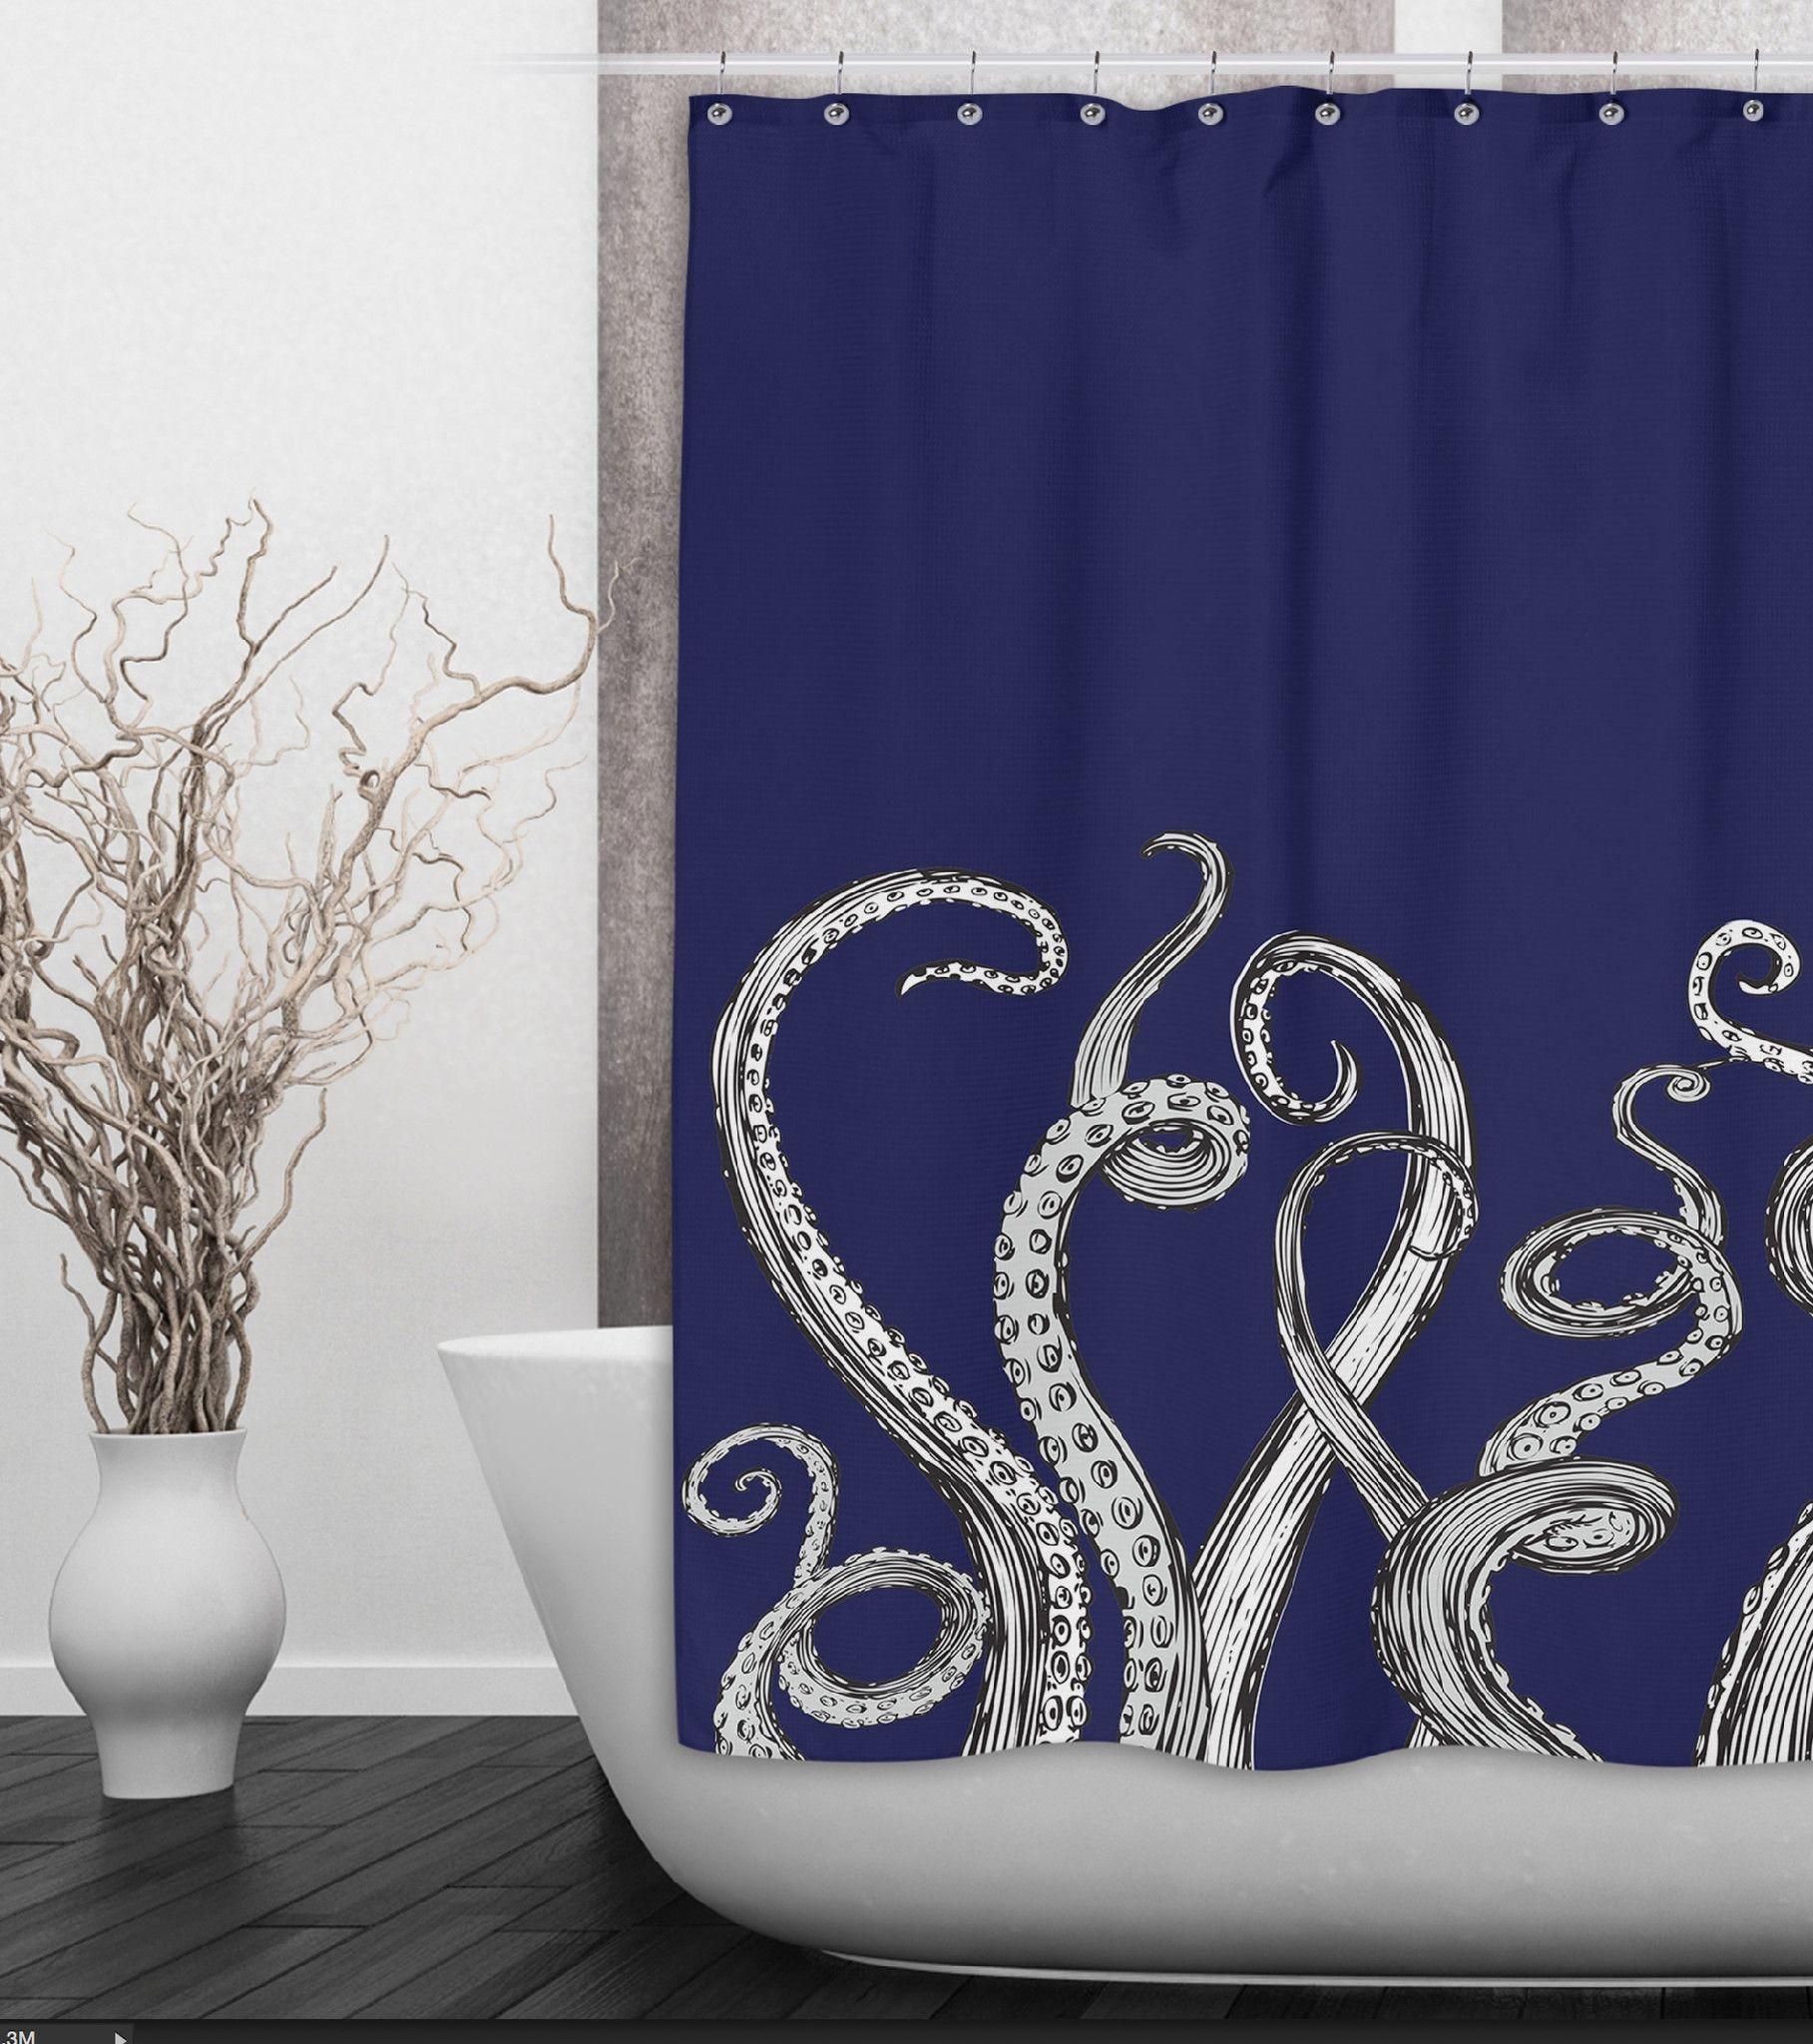 Squid Shower Curtain - Navy octopus tentacle shower curtain